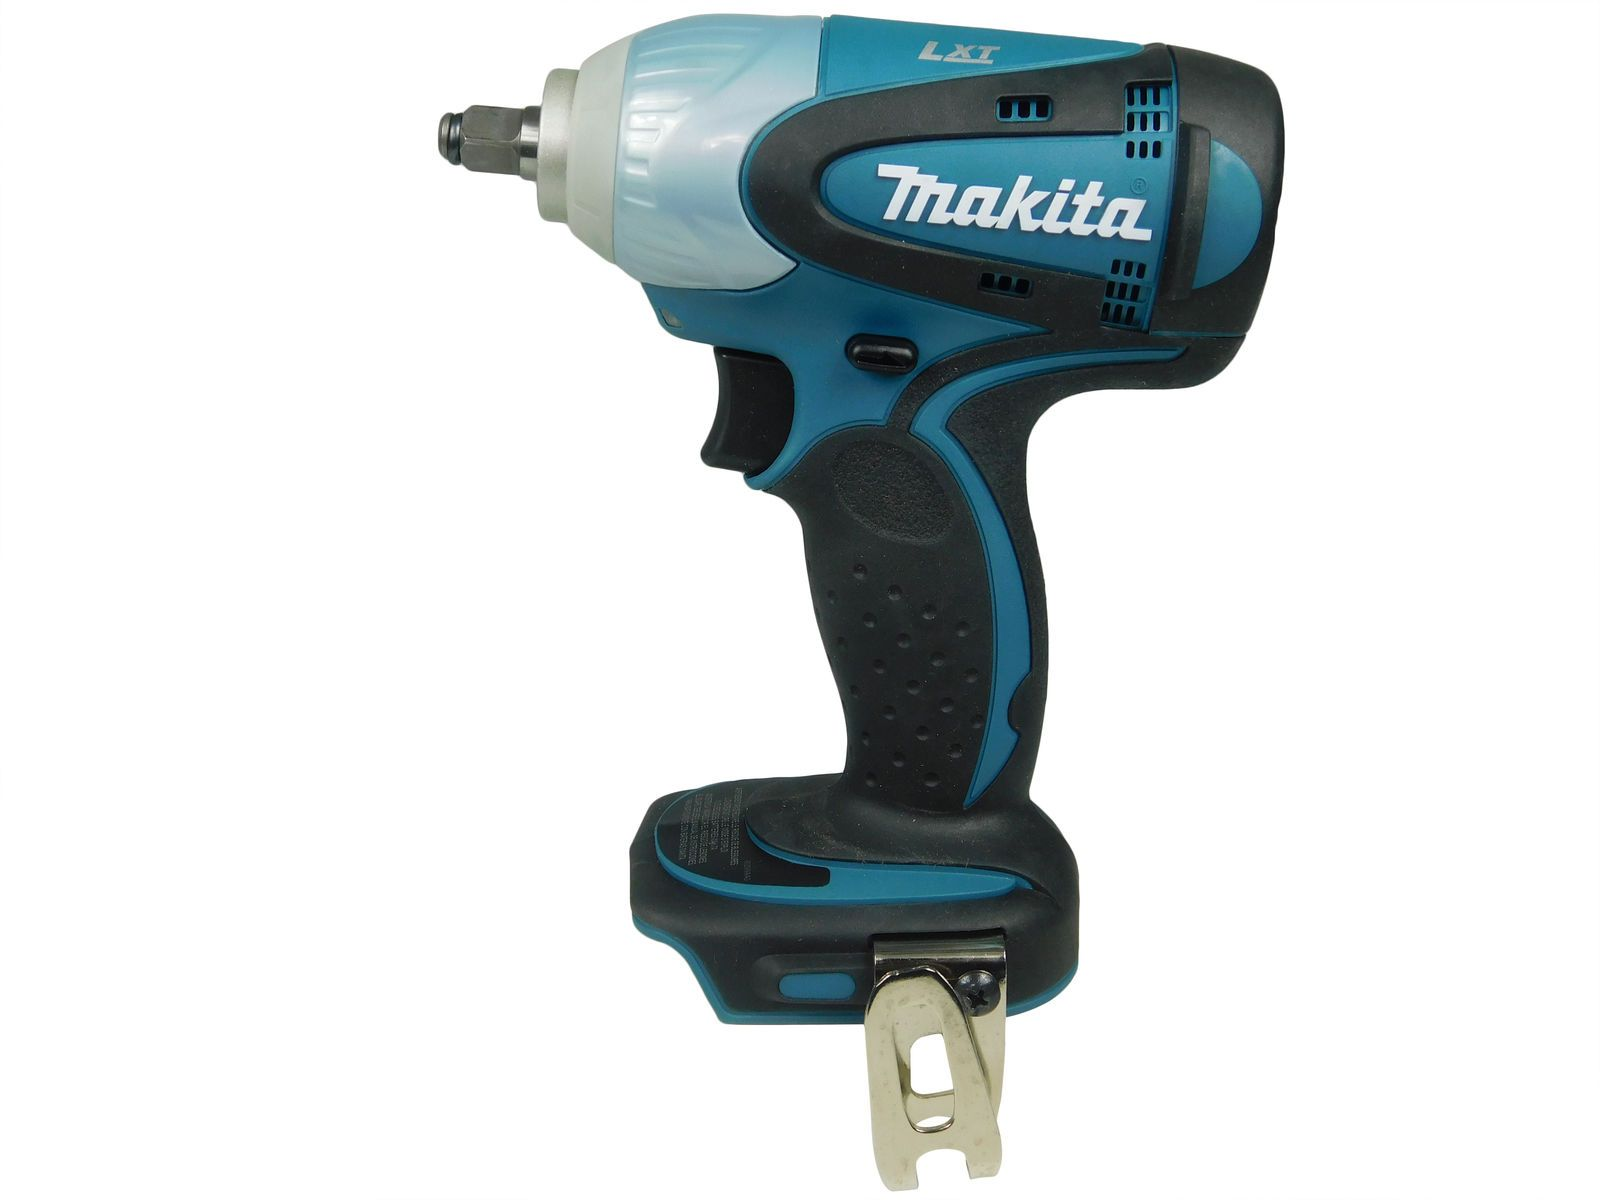 Makita-XWT06Z-18V-Lithium-Ion-Cordless-3-8-Impact-Wrench-Bare-Tool-image-1